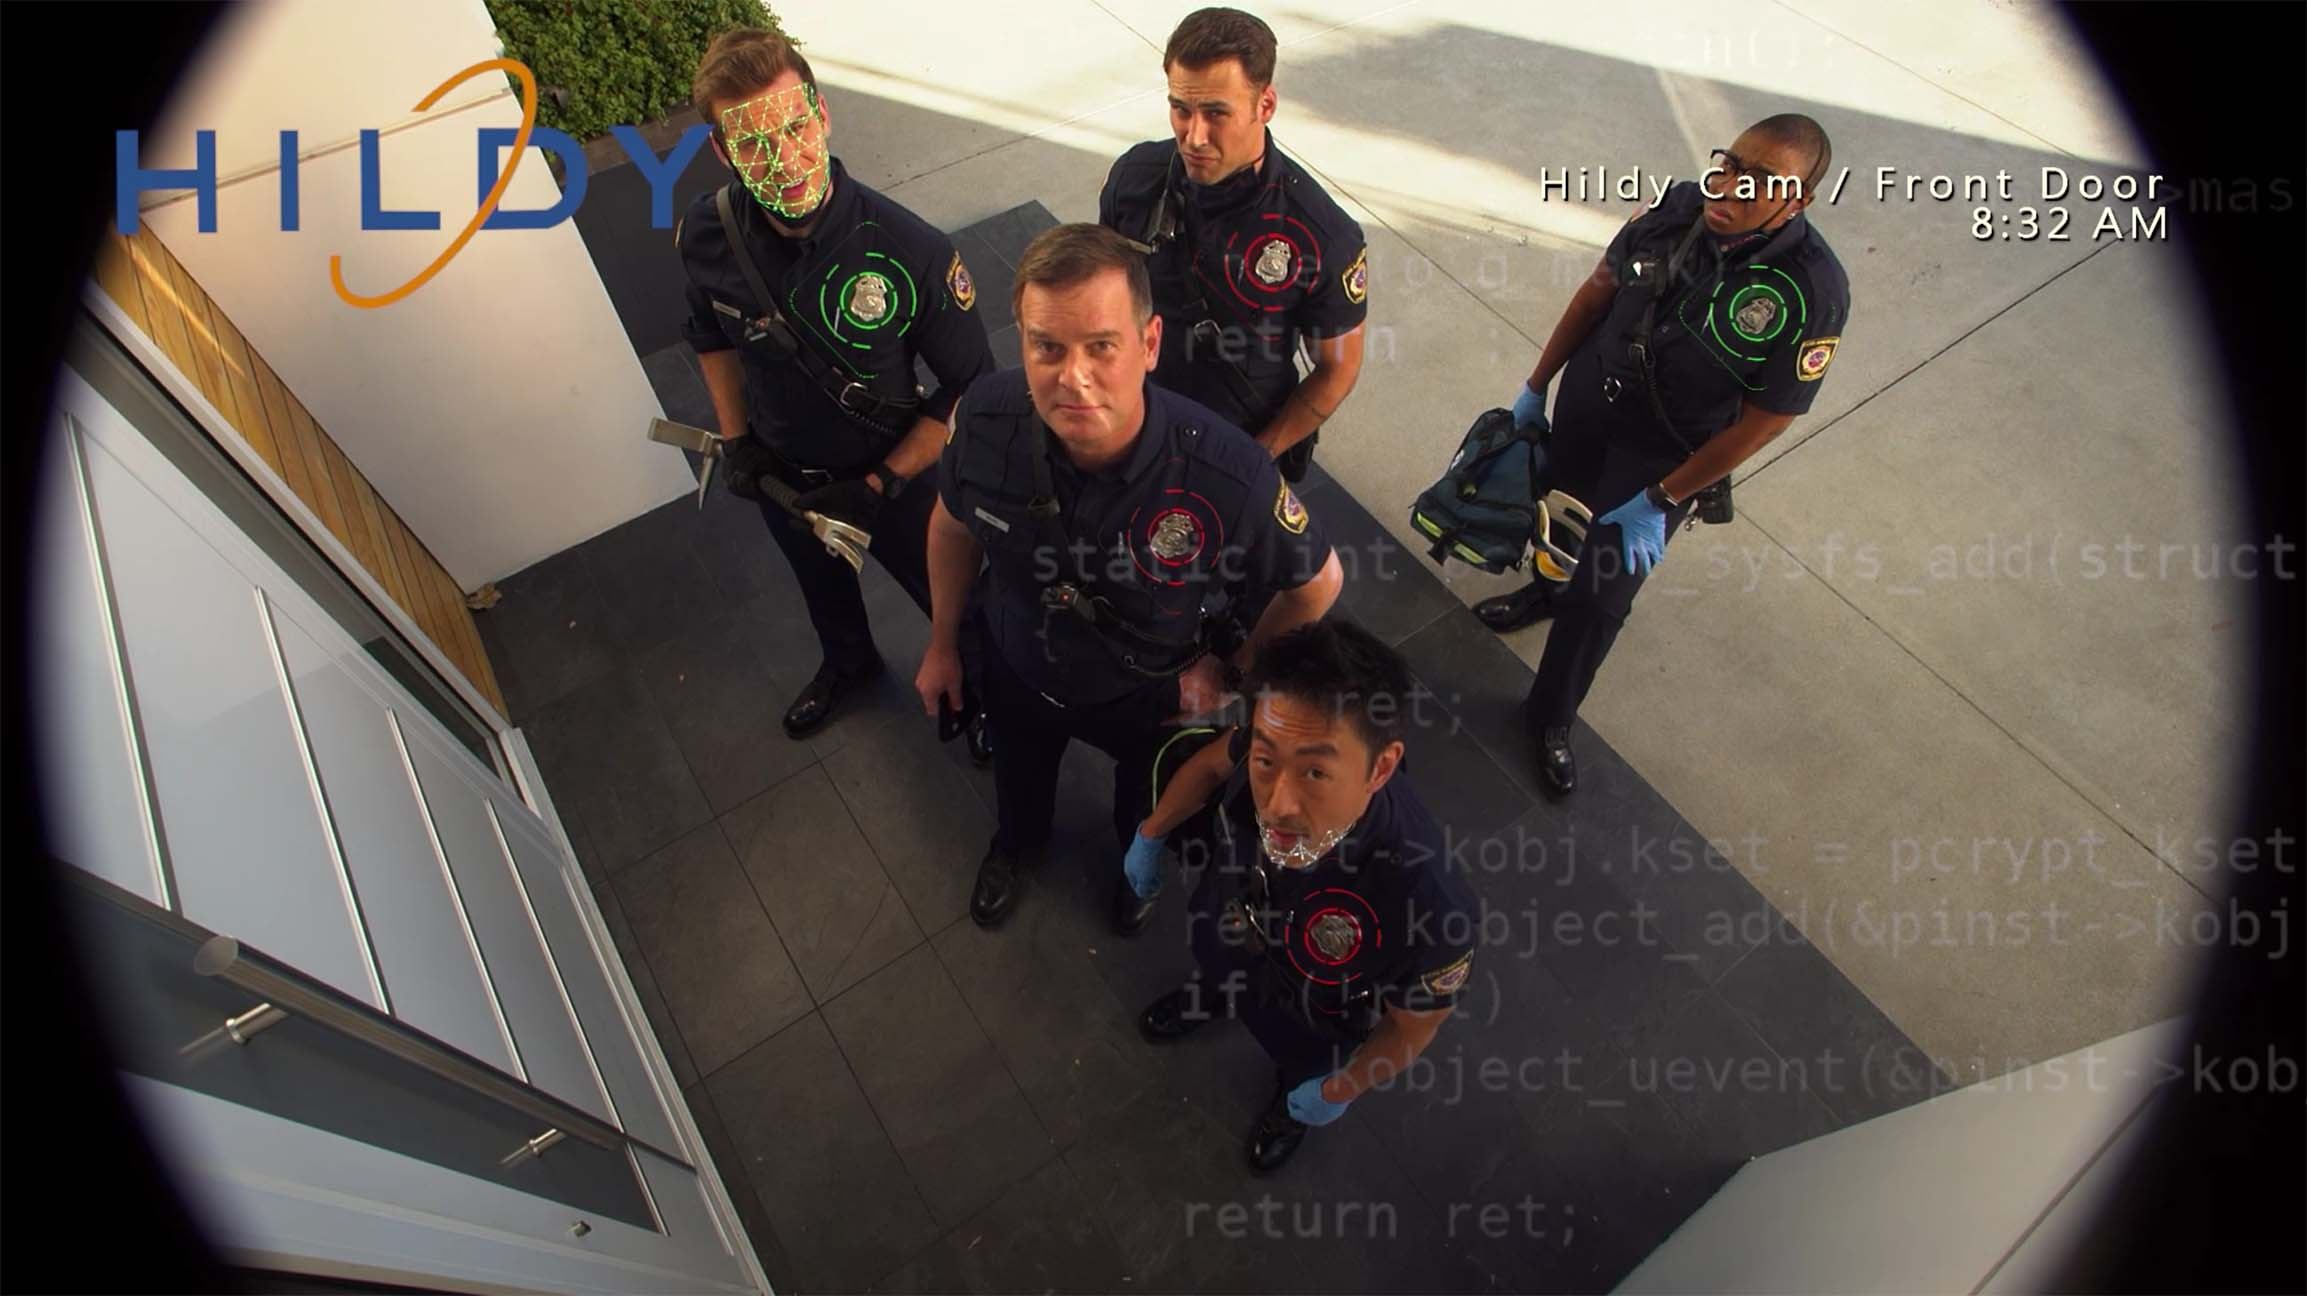 9-1-1 Season 4 Episode 3 Future Tense